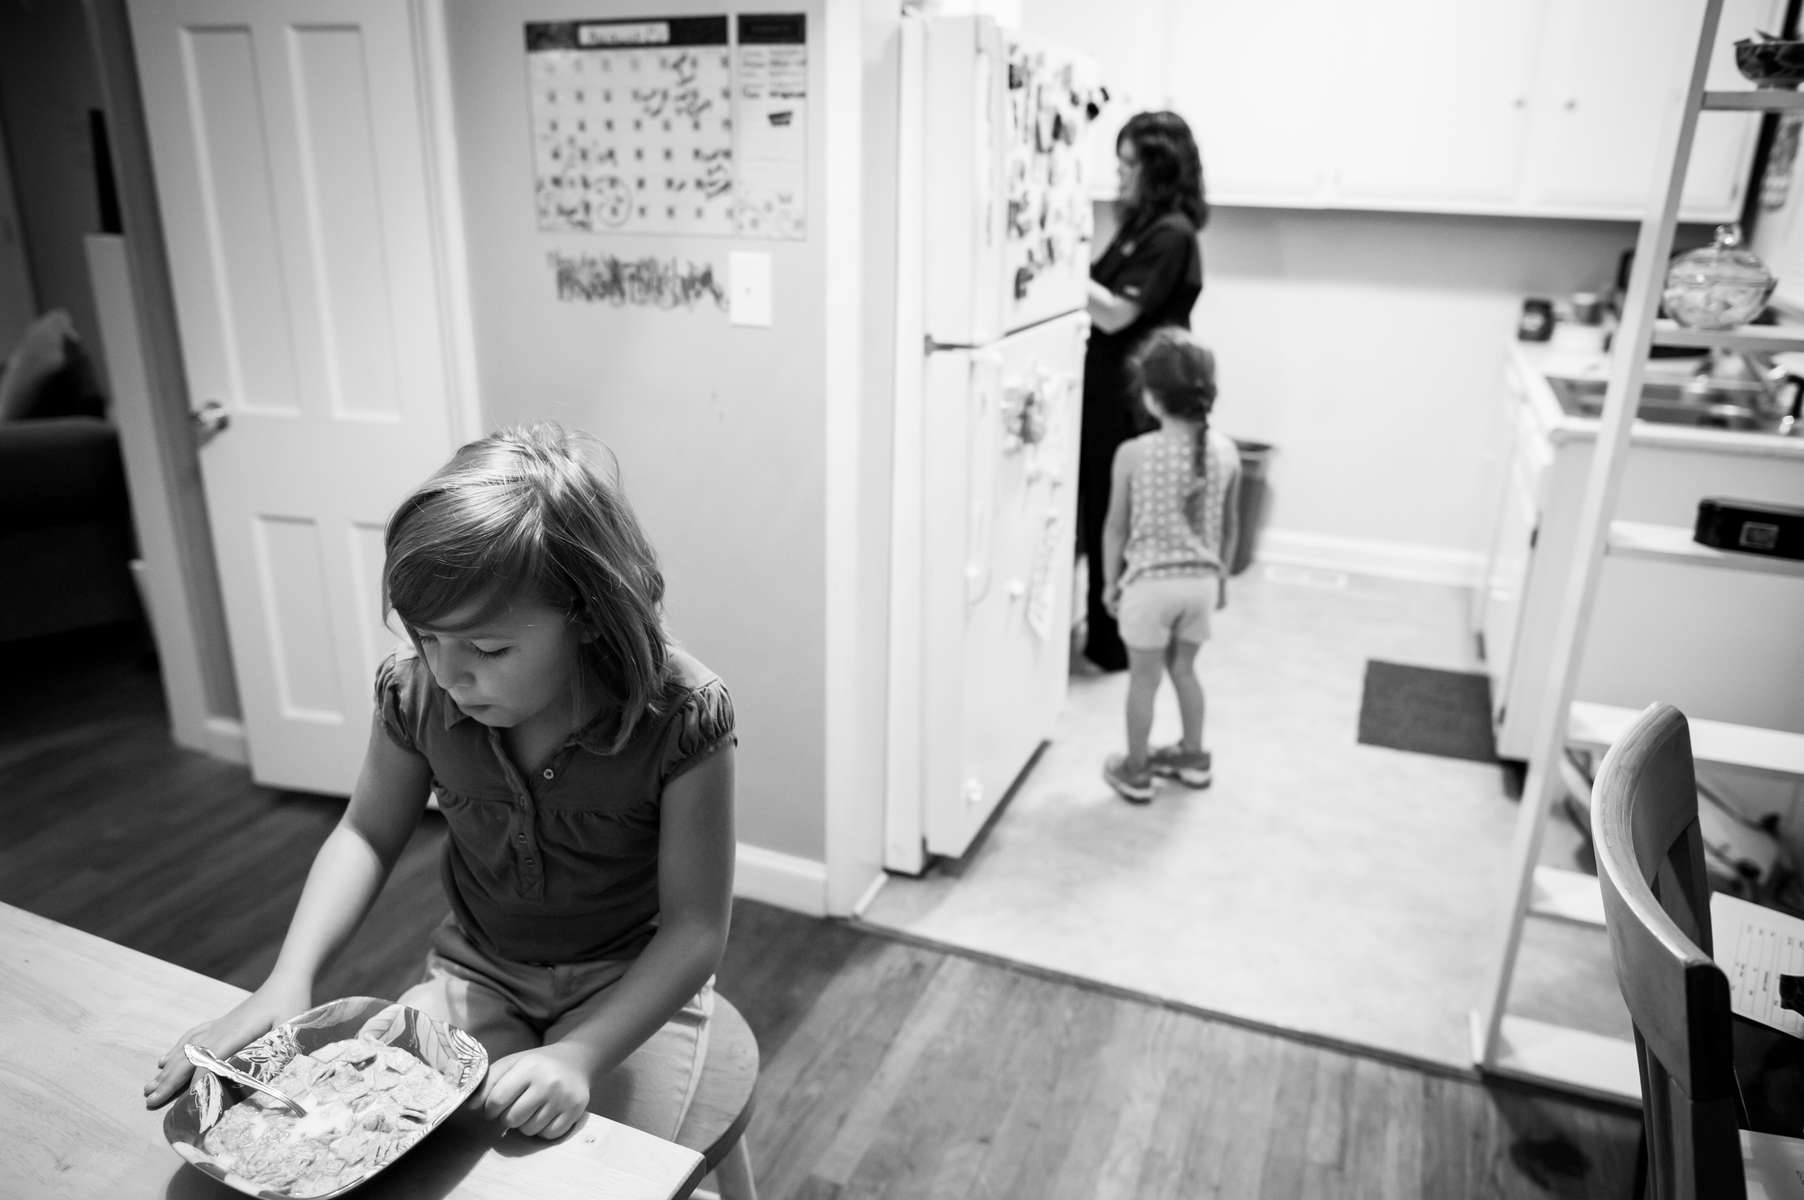 Caitlin Bell at home in Chattanooga, TN with her daughters Zoey McCarver, 8-years-old, and Kessler McCarver, 4-years-old on the morning of August 21, 2013.